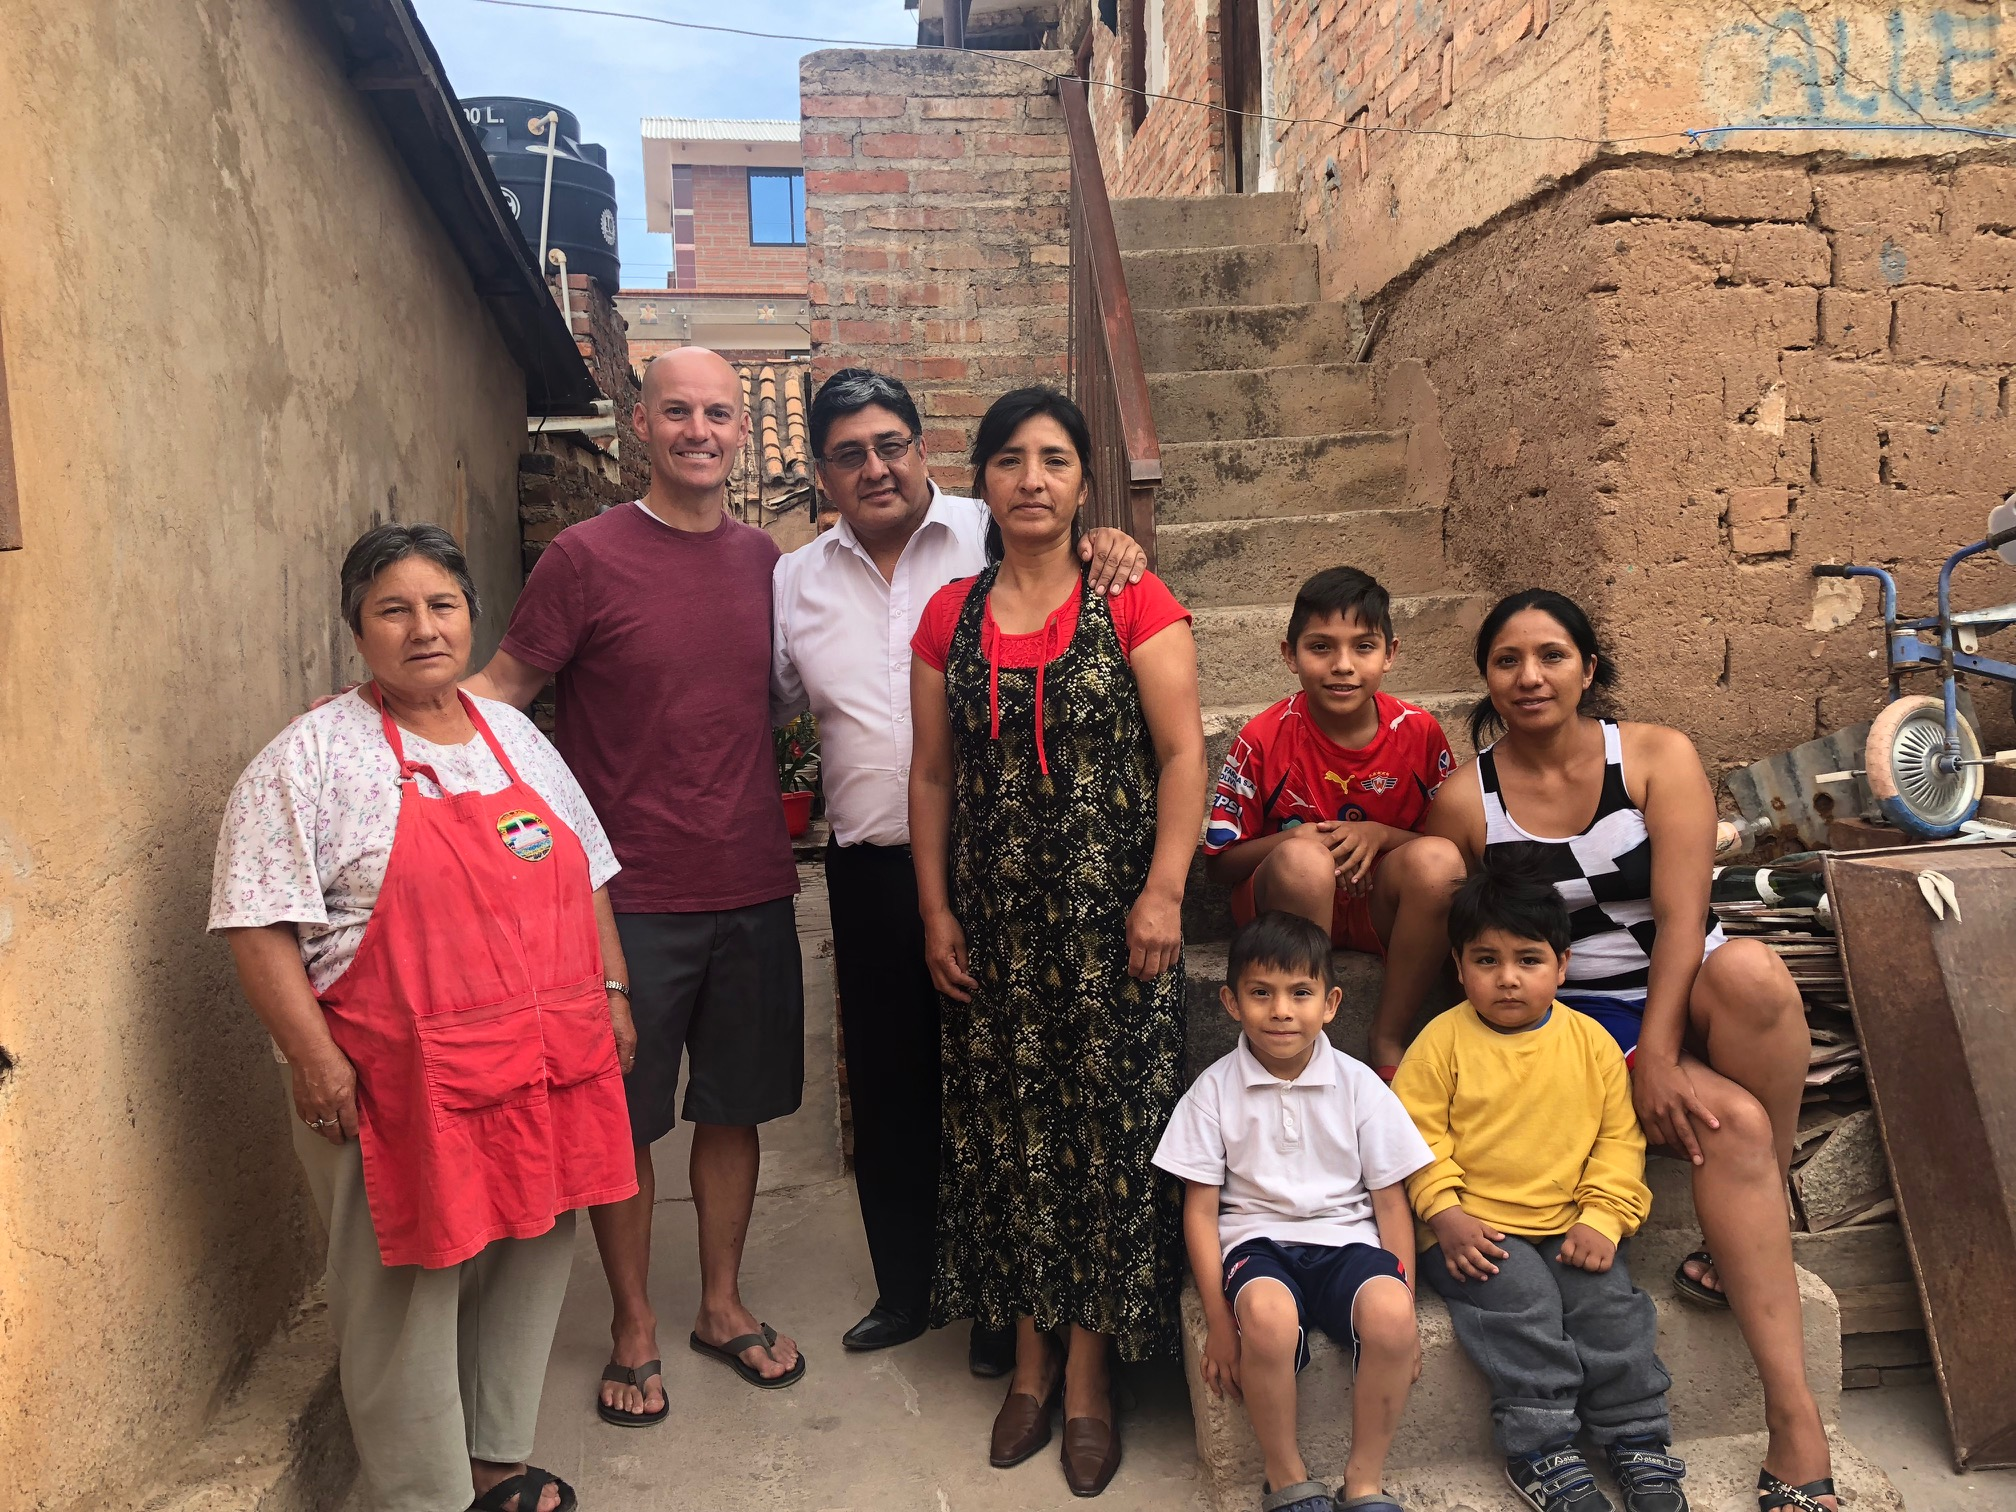 Scott Mortensen with the Quintanilla family in the Sipe Sipe area which he visited when he returned to visit Bolivia in October. He spent many days eating lunch with the Quintanilla family while serving in the are some 20 years ago.